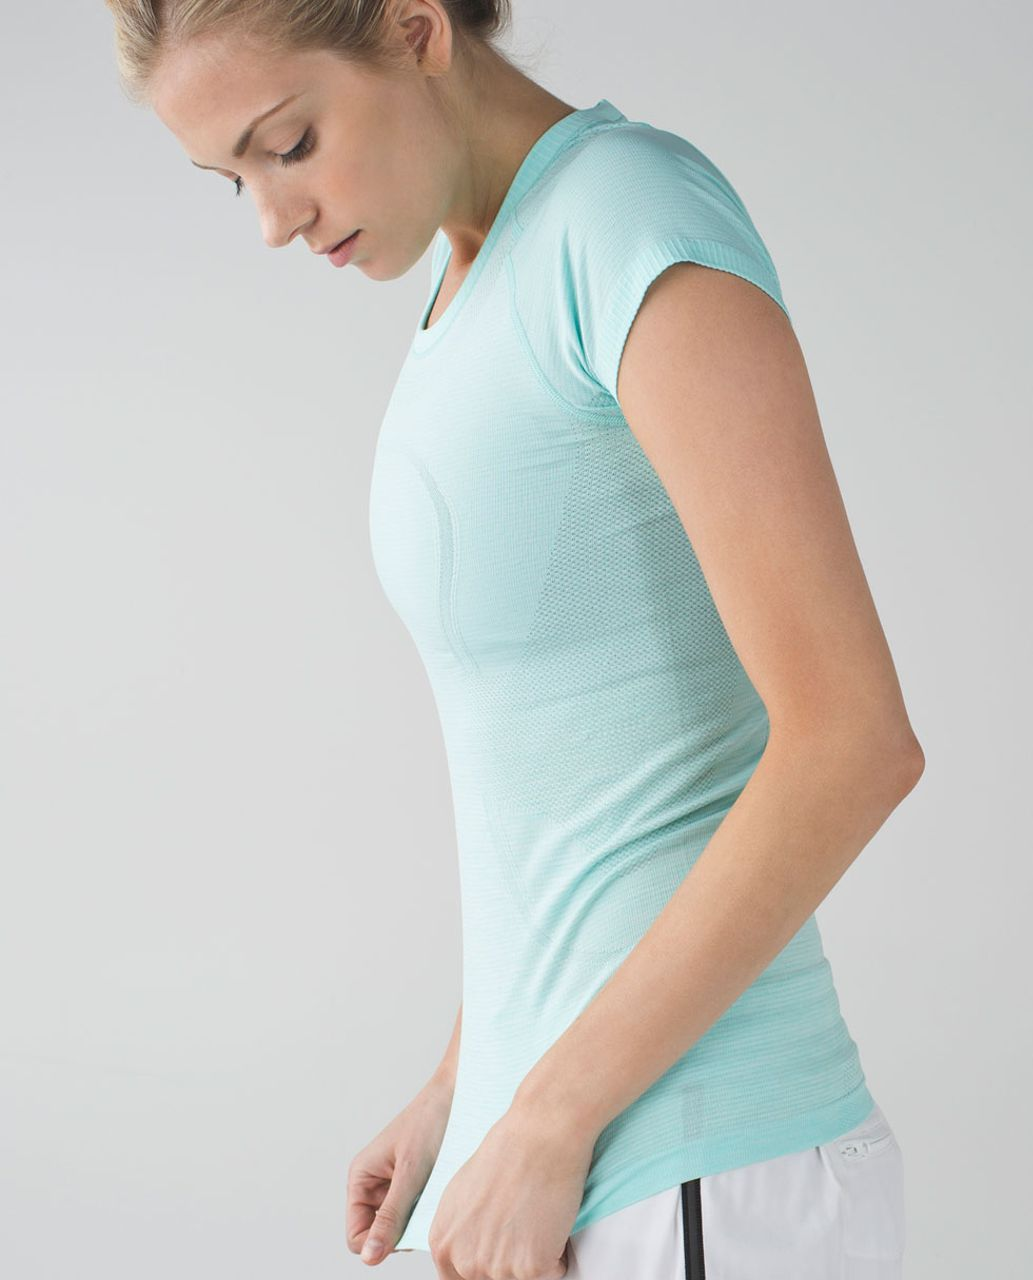 Lululemon Swiftly Tech Short Sleeve Crew - Heathered Tranquil Blue